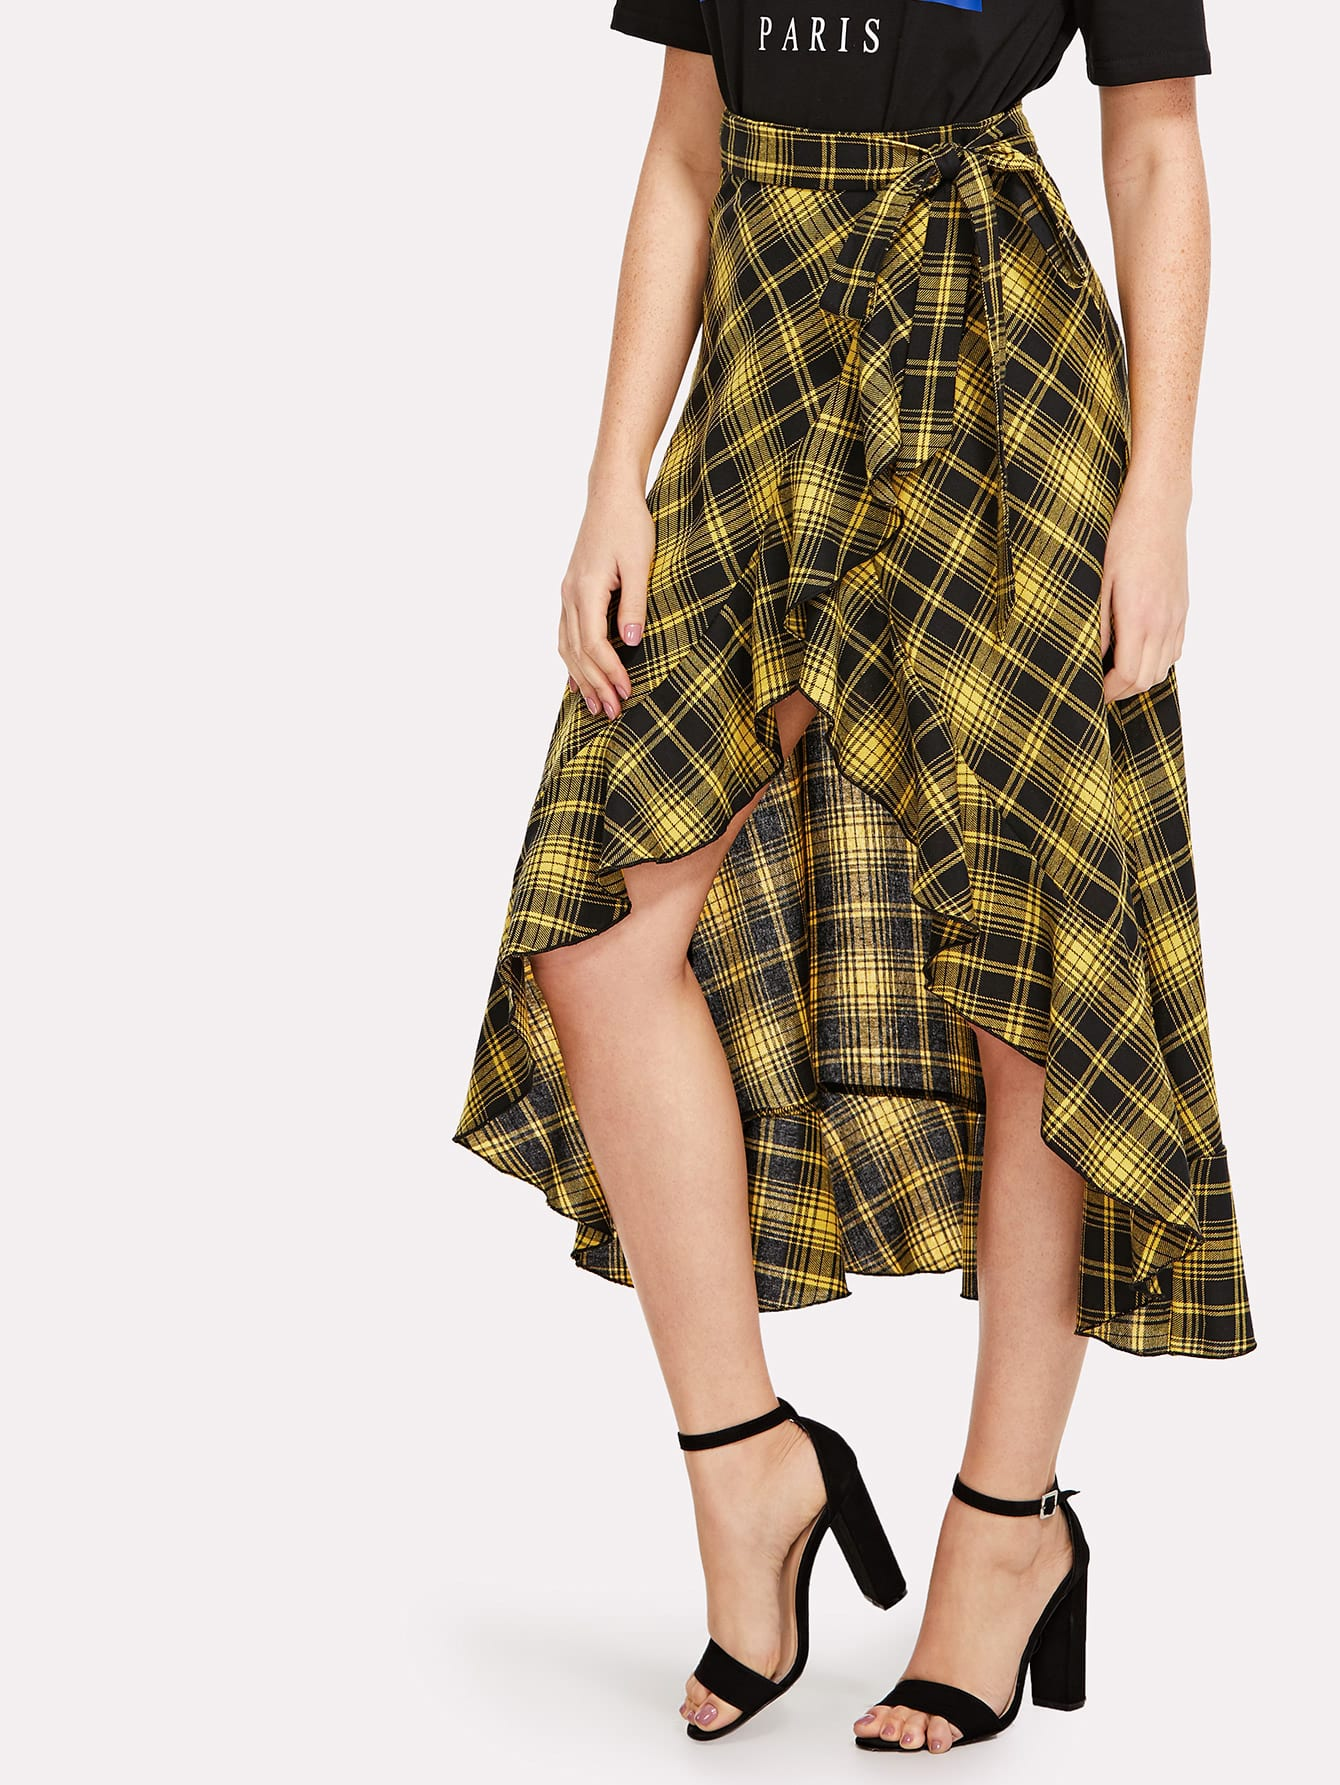 Knot Waist Asymmetrical Ruffle Hem Plaid Skirt knot waist asymmetrical ruffle hem plaid skirt